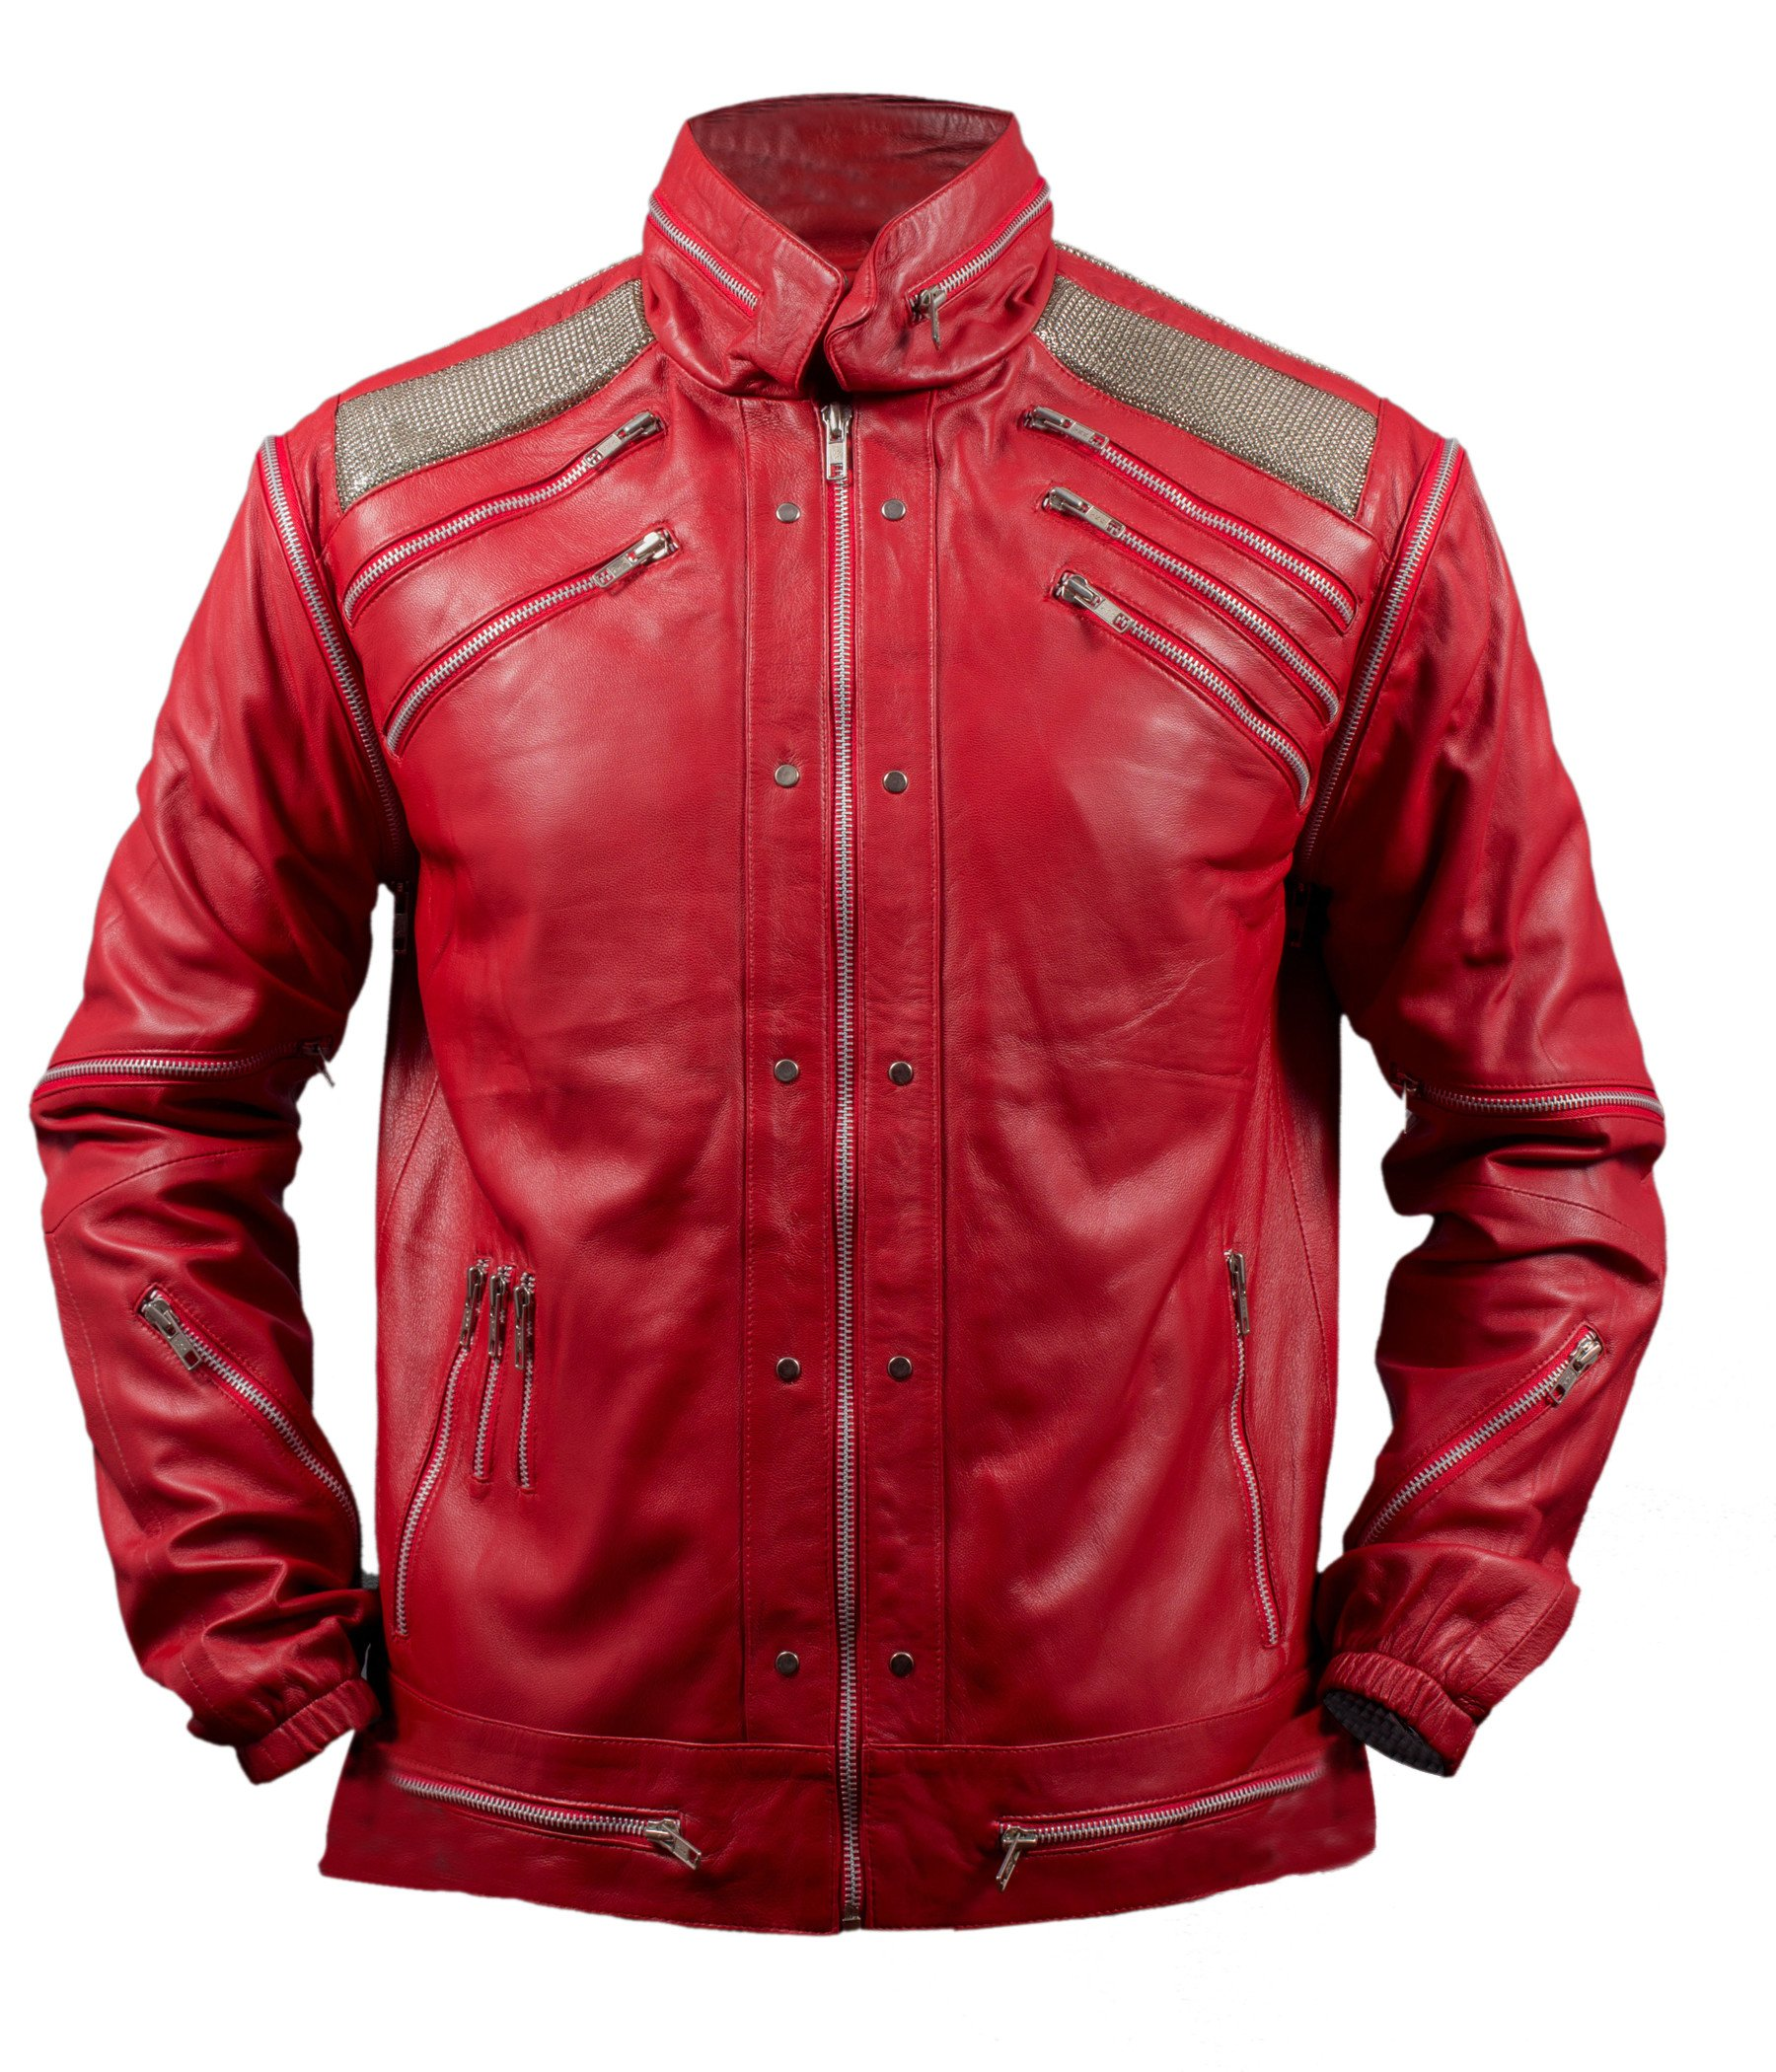 F&H Boy's Michael Jackson Beat It Jacket M Red by Flesh & Hide